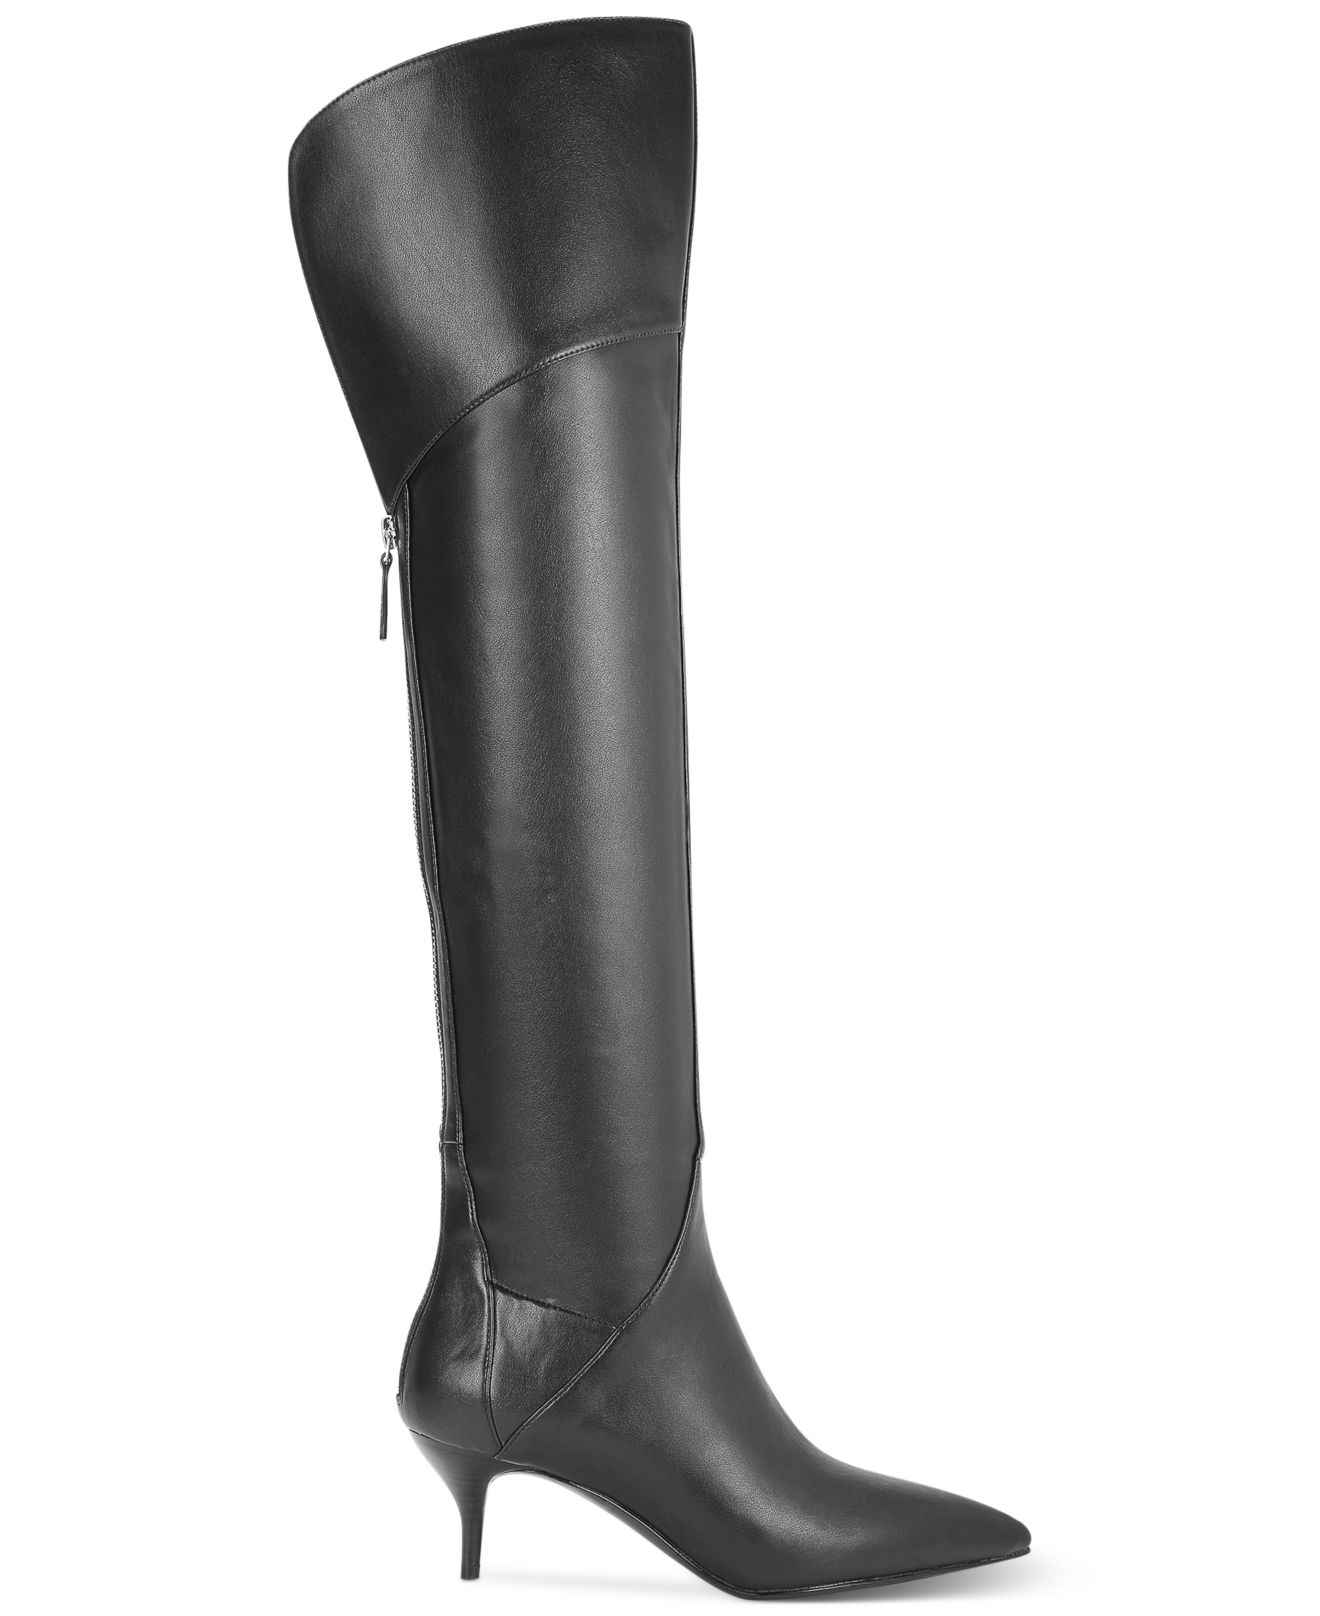 Bodycon dress knee high boots nine west ebay picked for